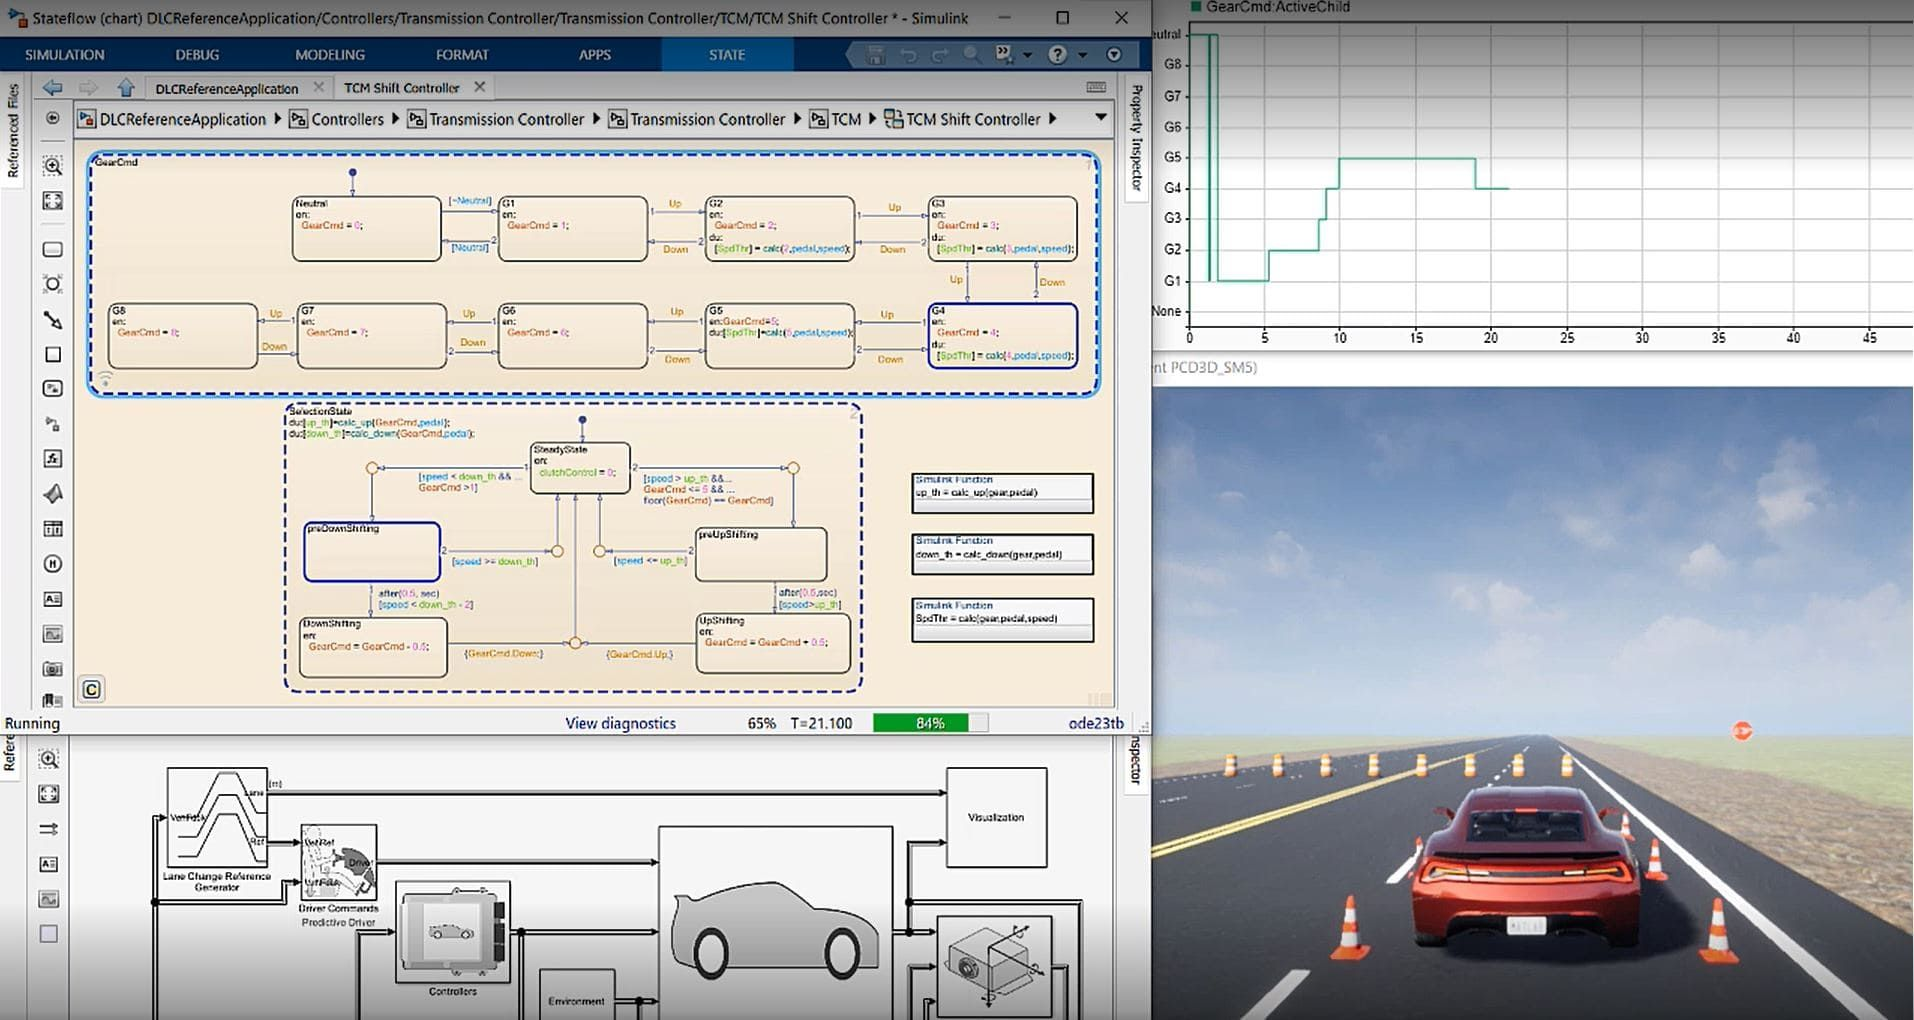 Stateflow provides a graphical language that includes state transition diagrams, flow charts, state transition tables, and truth tables.